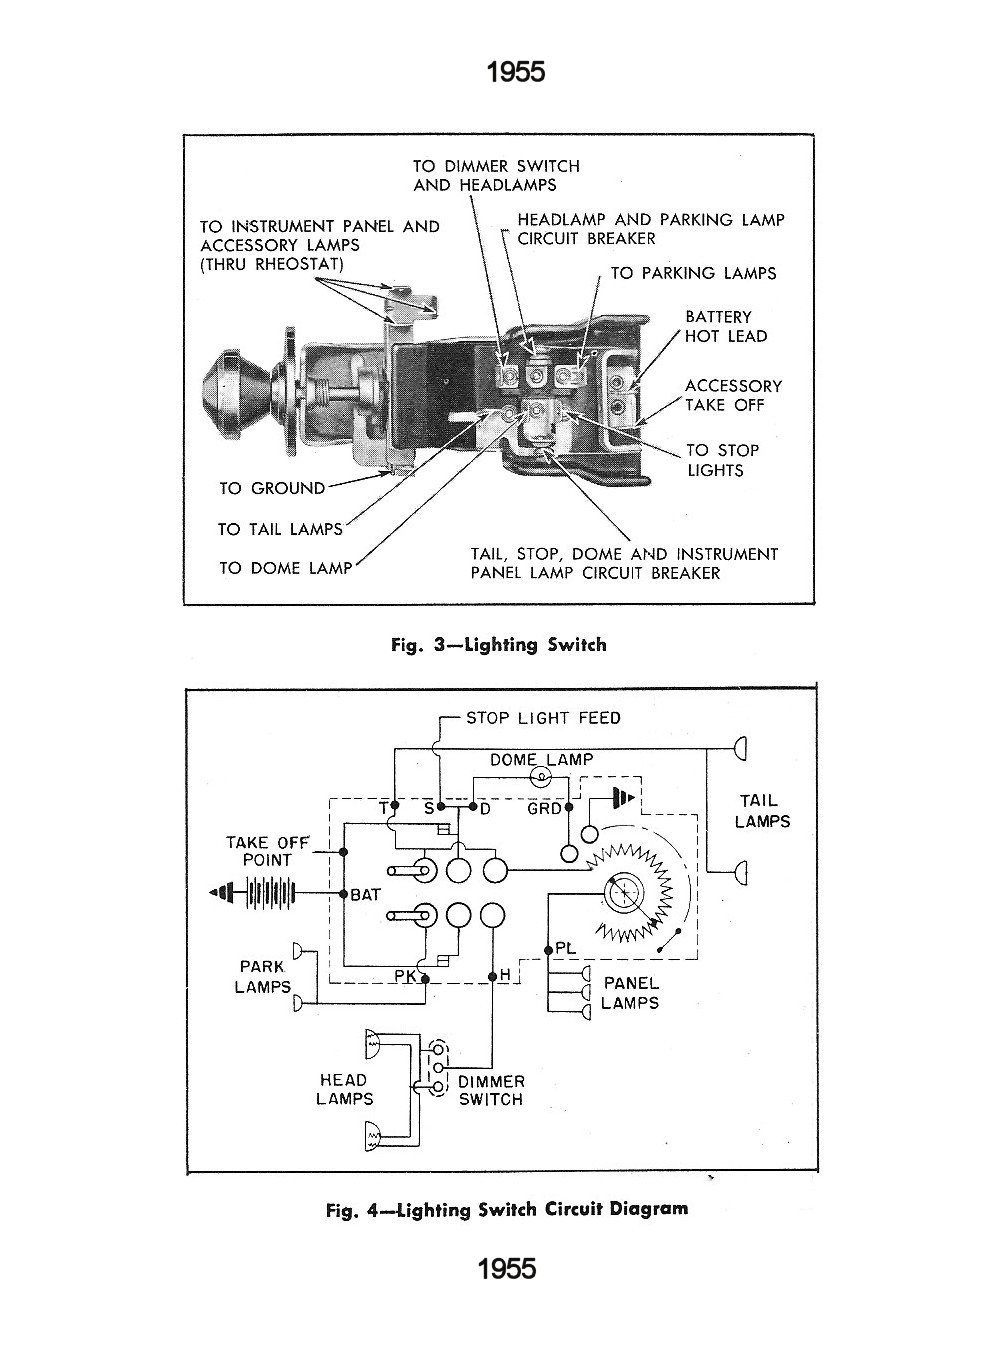 1955 chevy truck wiring on wiring diagram chevy wiring diagrams 1955 chevy wiper wiring diagram 1955 chevy truck wiring